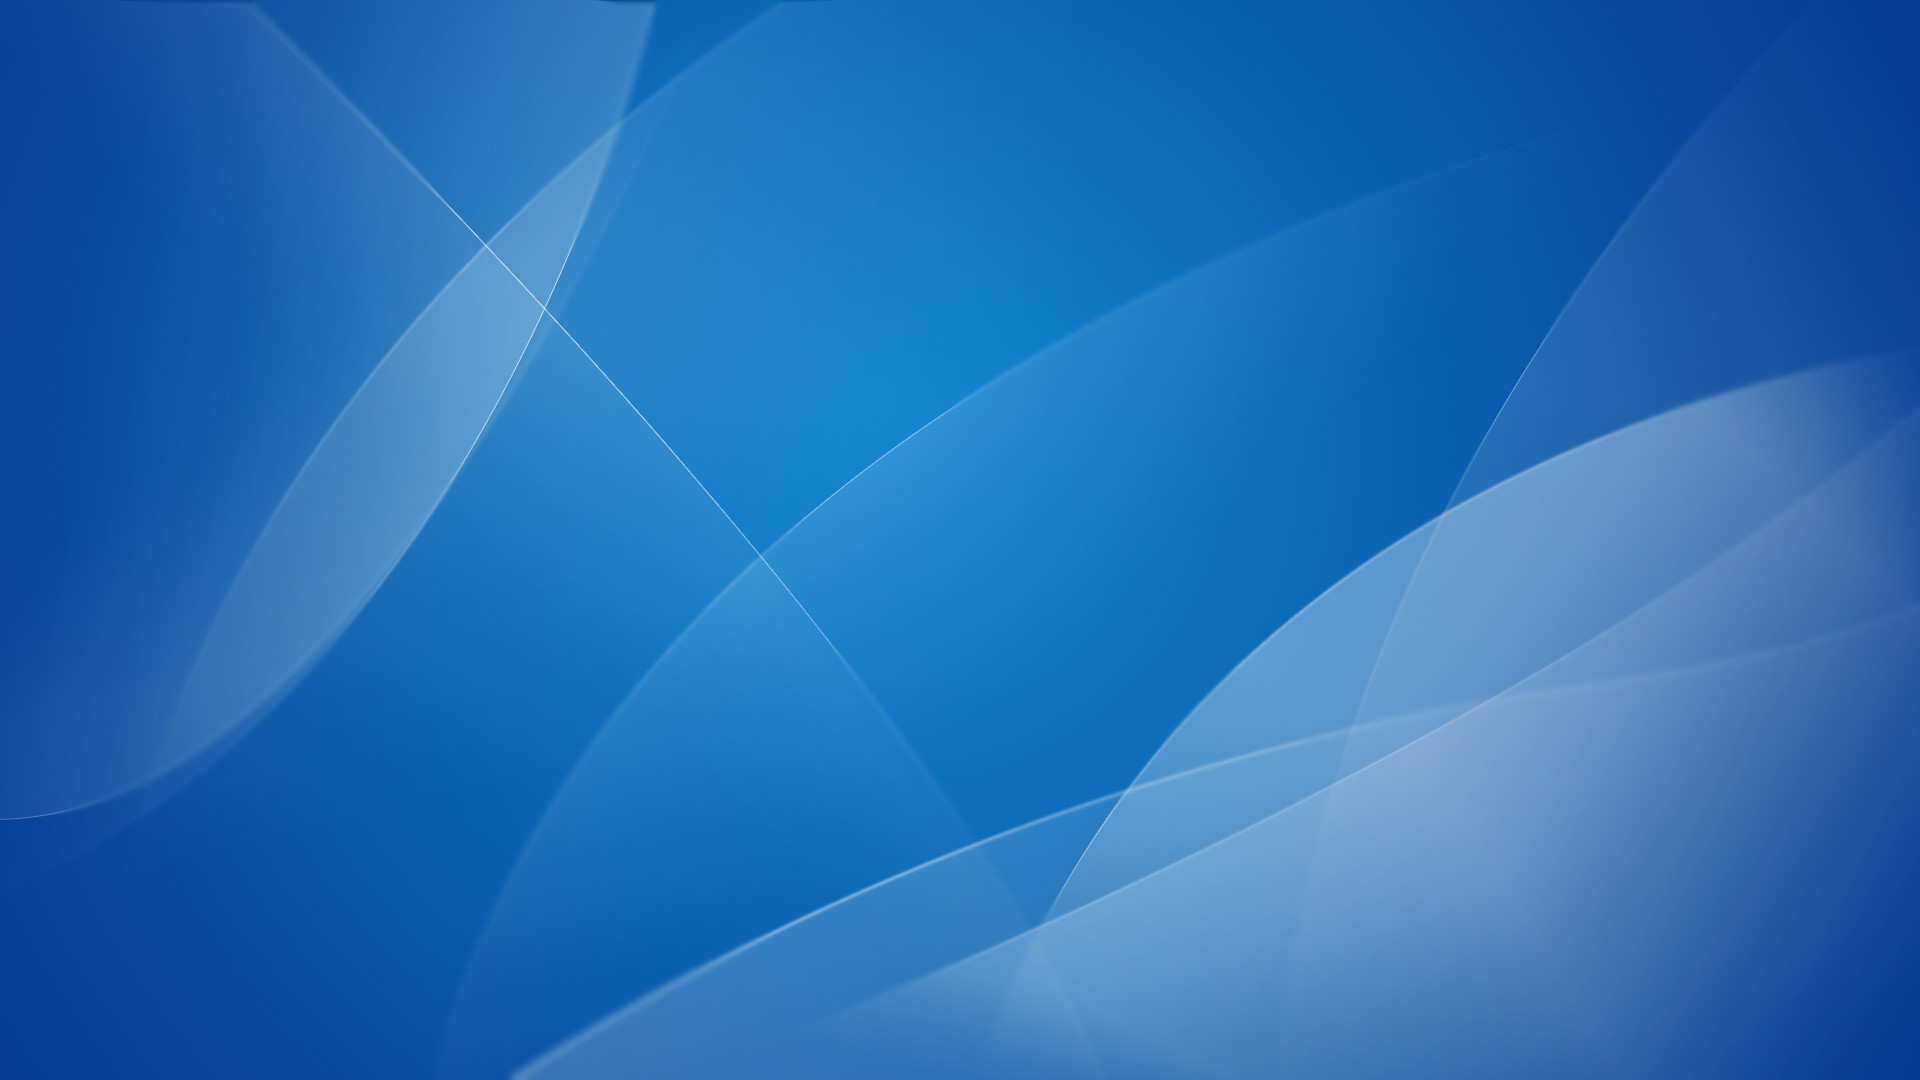 Res: 1920x1080, Blue Wallpaper For Background 1